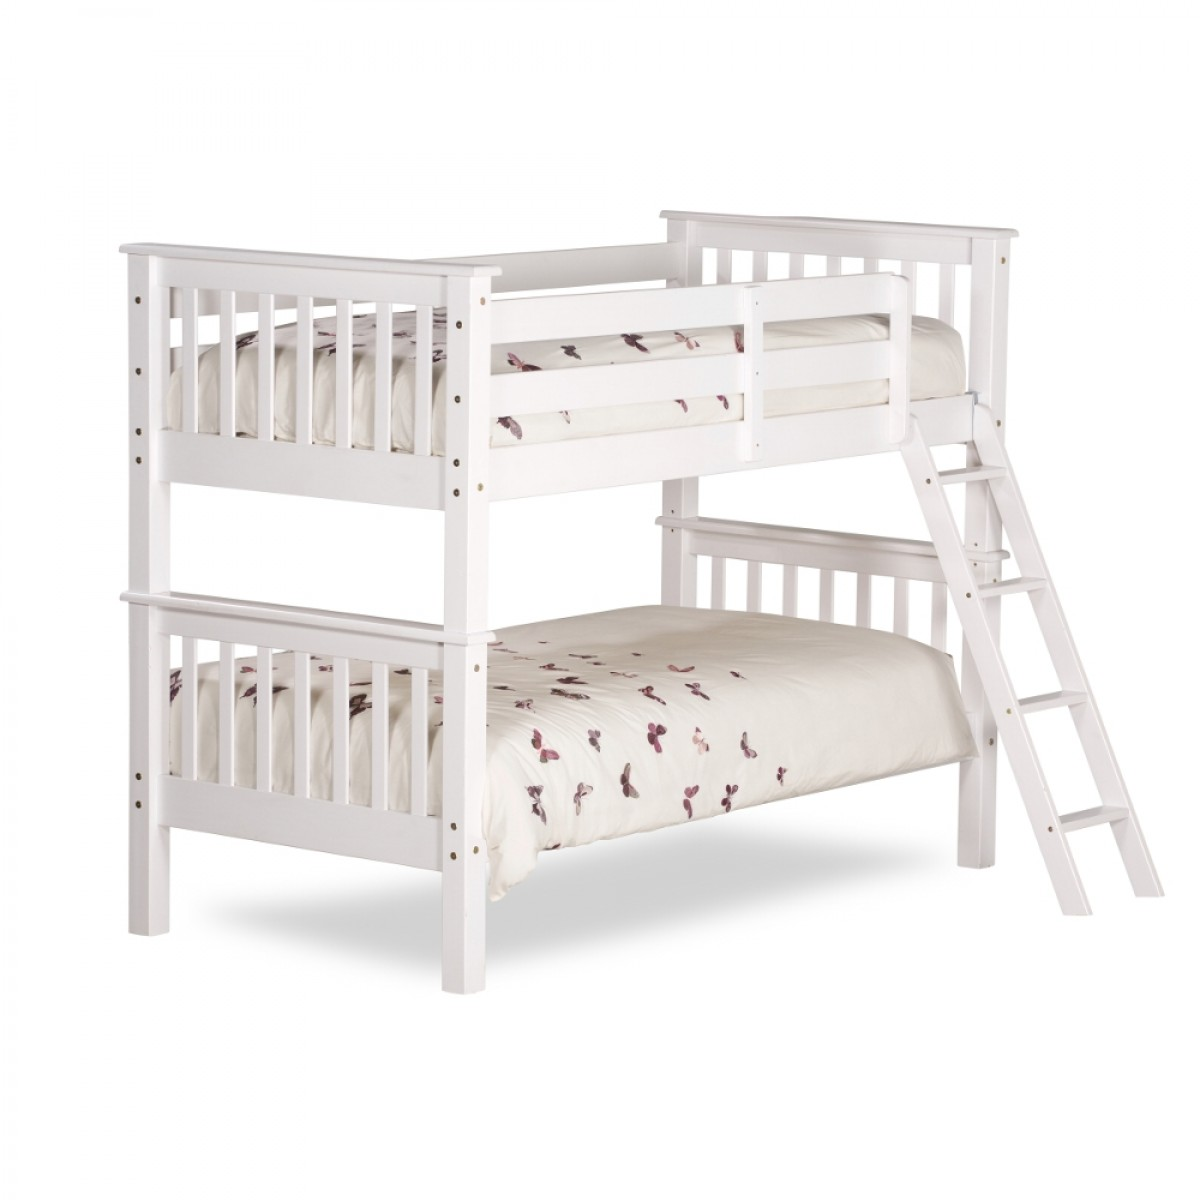 White Wooden Bunk Beds Oxford White Wooden Bunk Bed